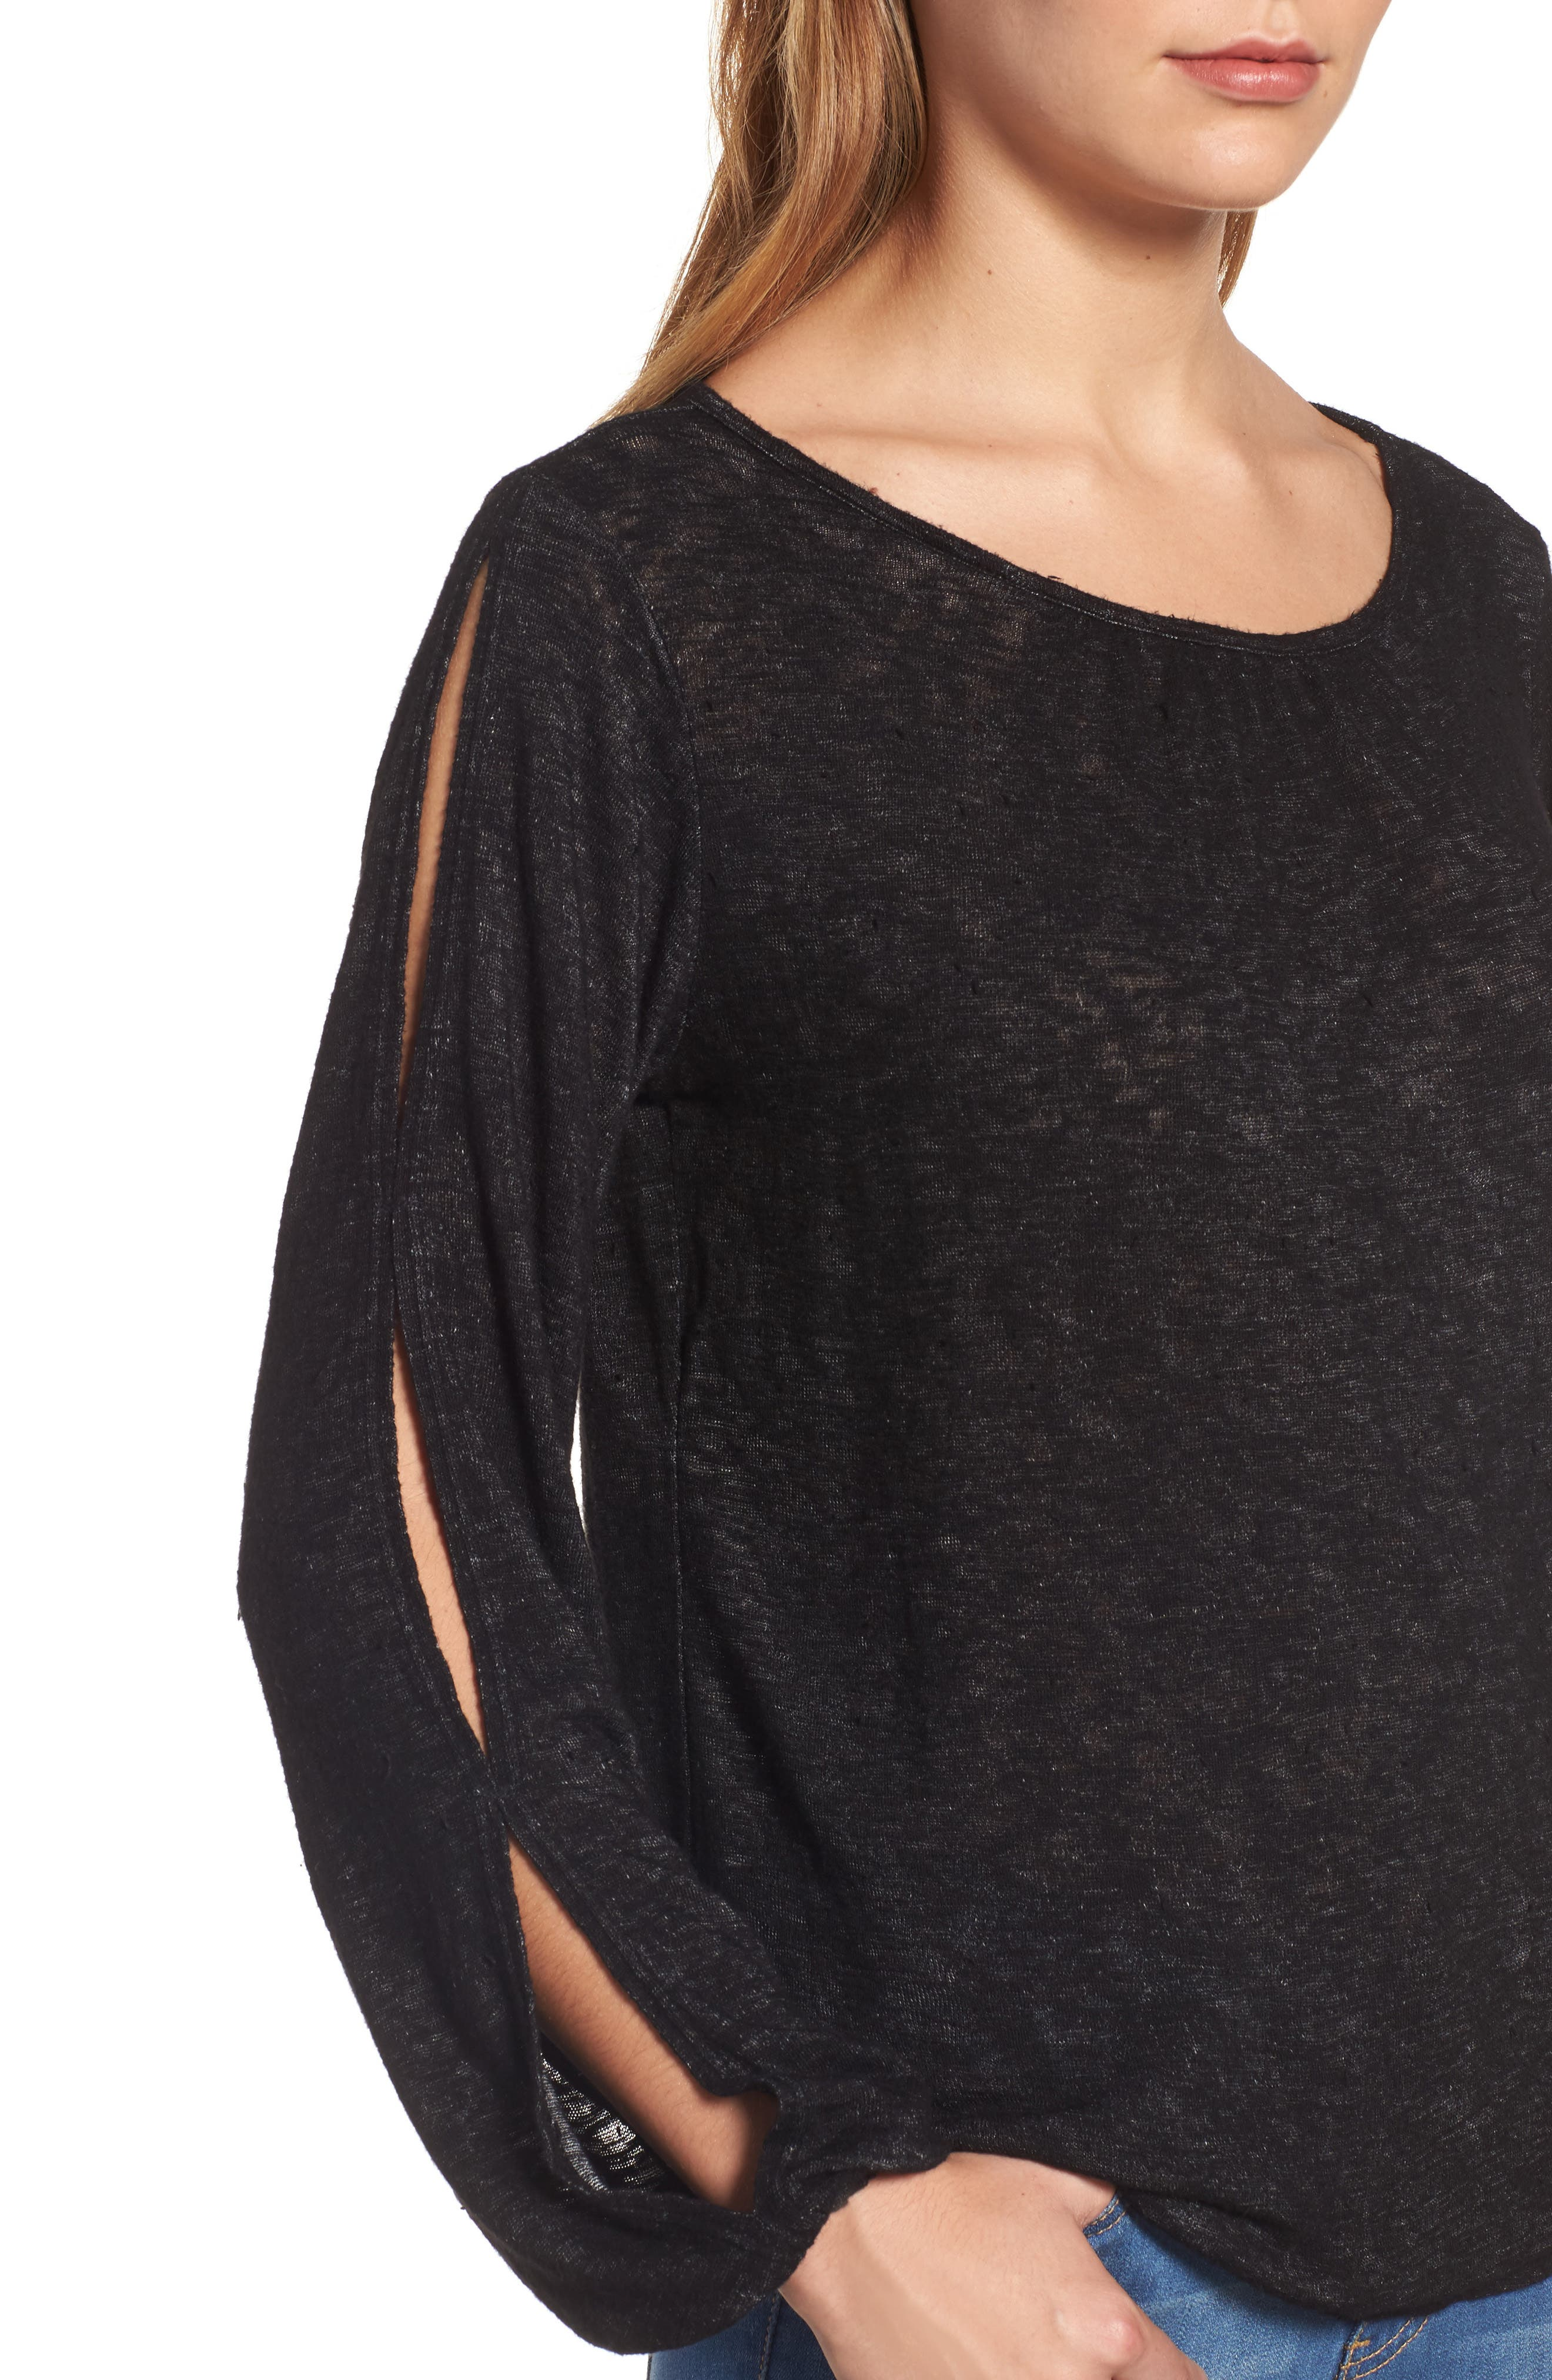 Slit Sleeve Knit Top,                             Alternate thumbnail 4, color,                             001